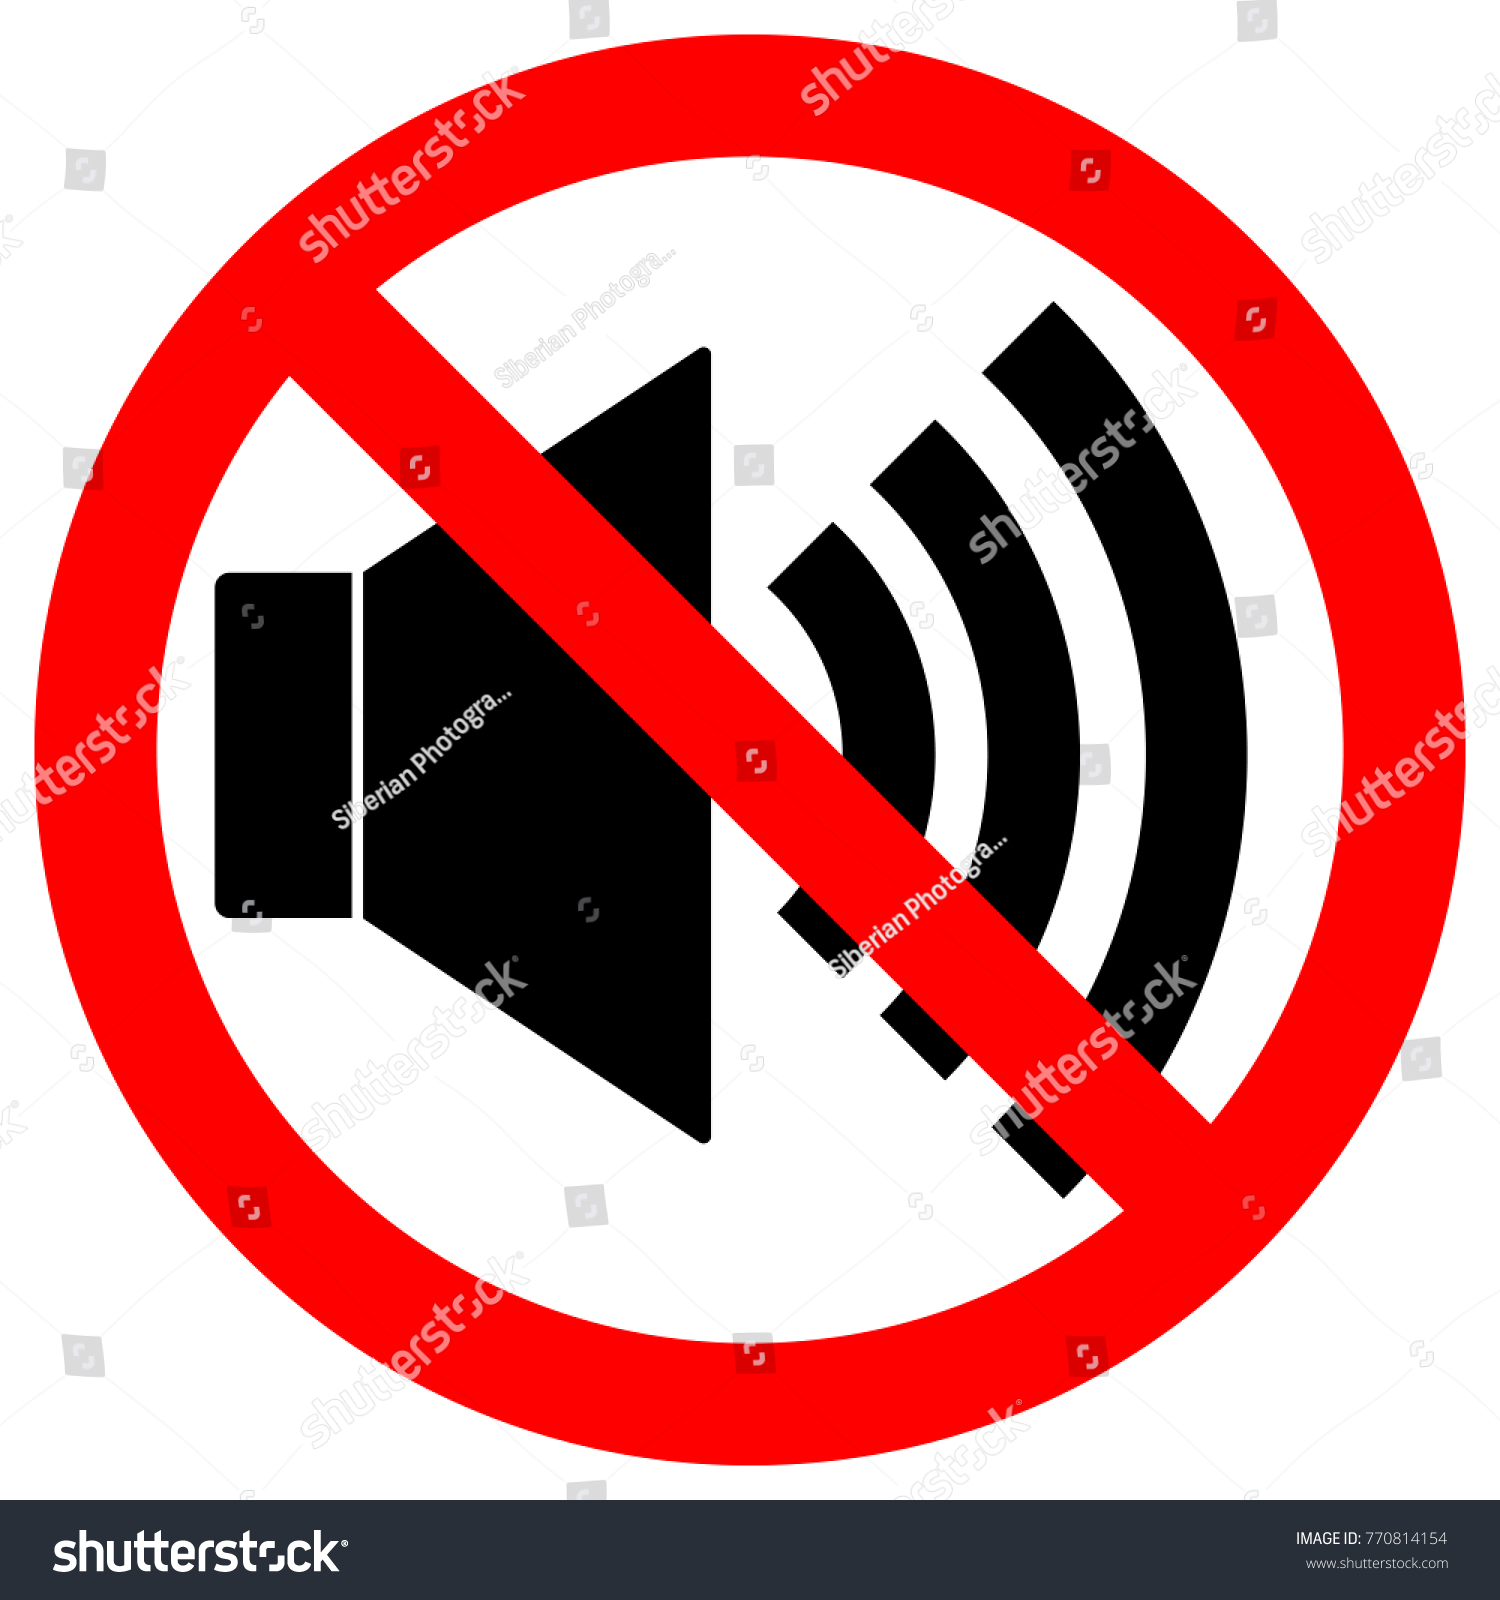 No sound sign loudspeaker icon crossed stock vector 770814154 no sound sign loudspeaker icon in crossed out red circle keep silence symbol buycottarizona Choice Image